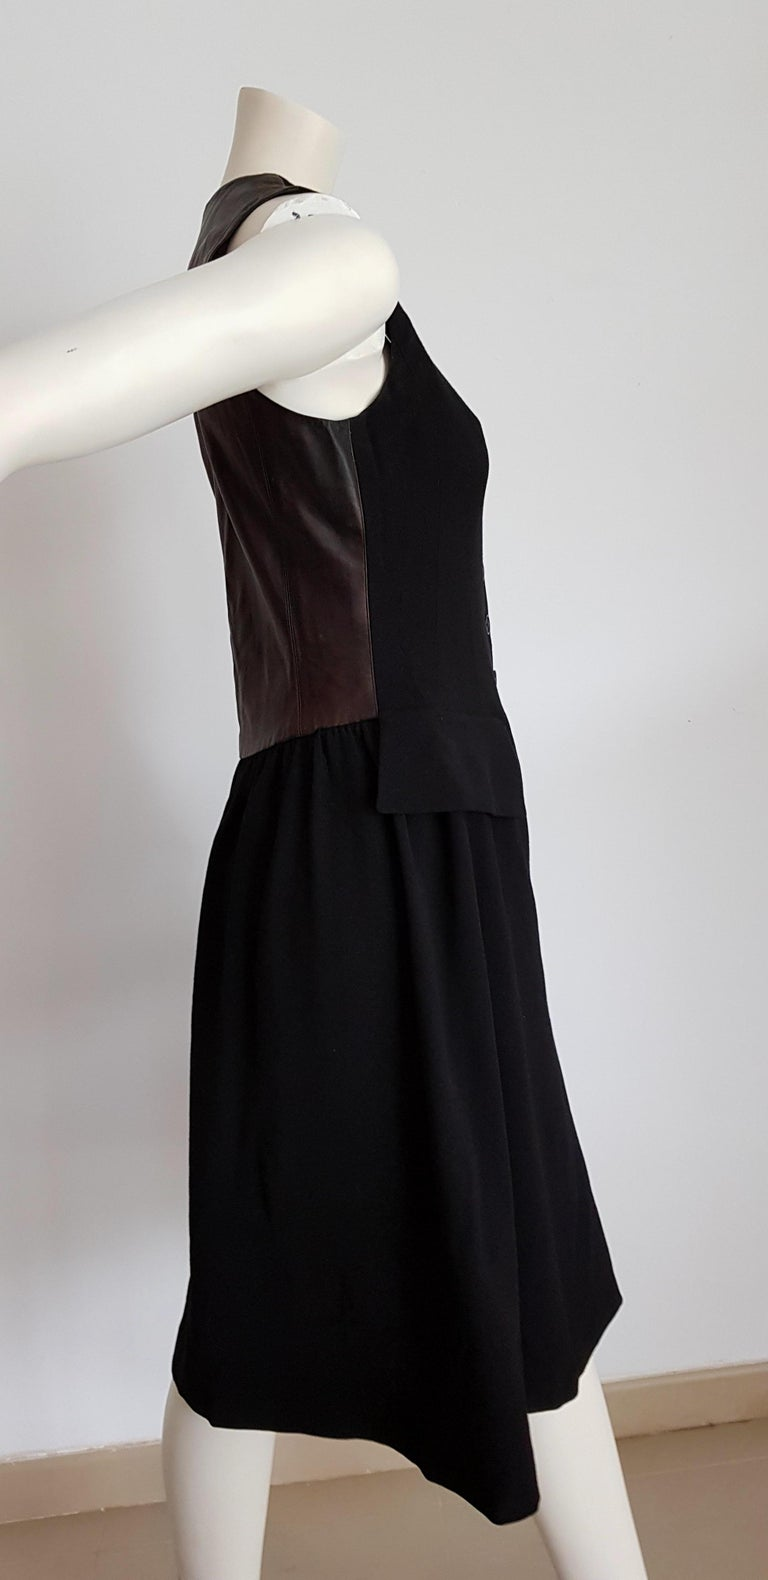 HERMES  Black Wool Leather Light Bronze Tone Lambskin Dress  In Excellent Condition For Sale In Somo (Santander), ES